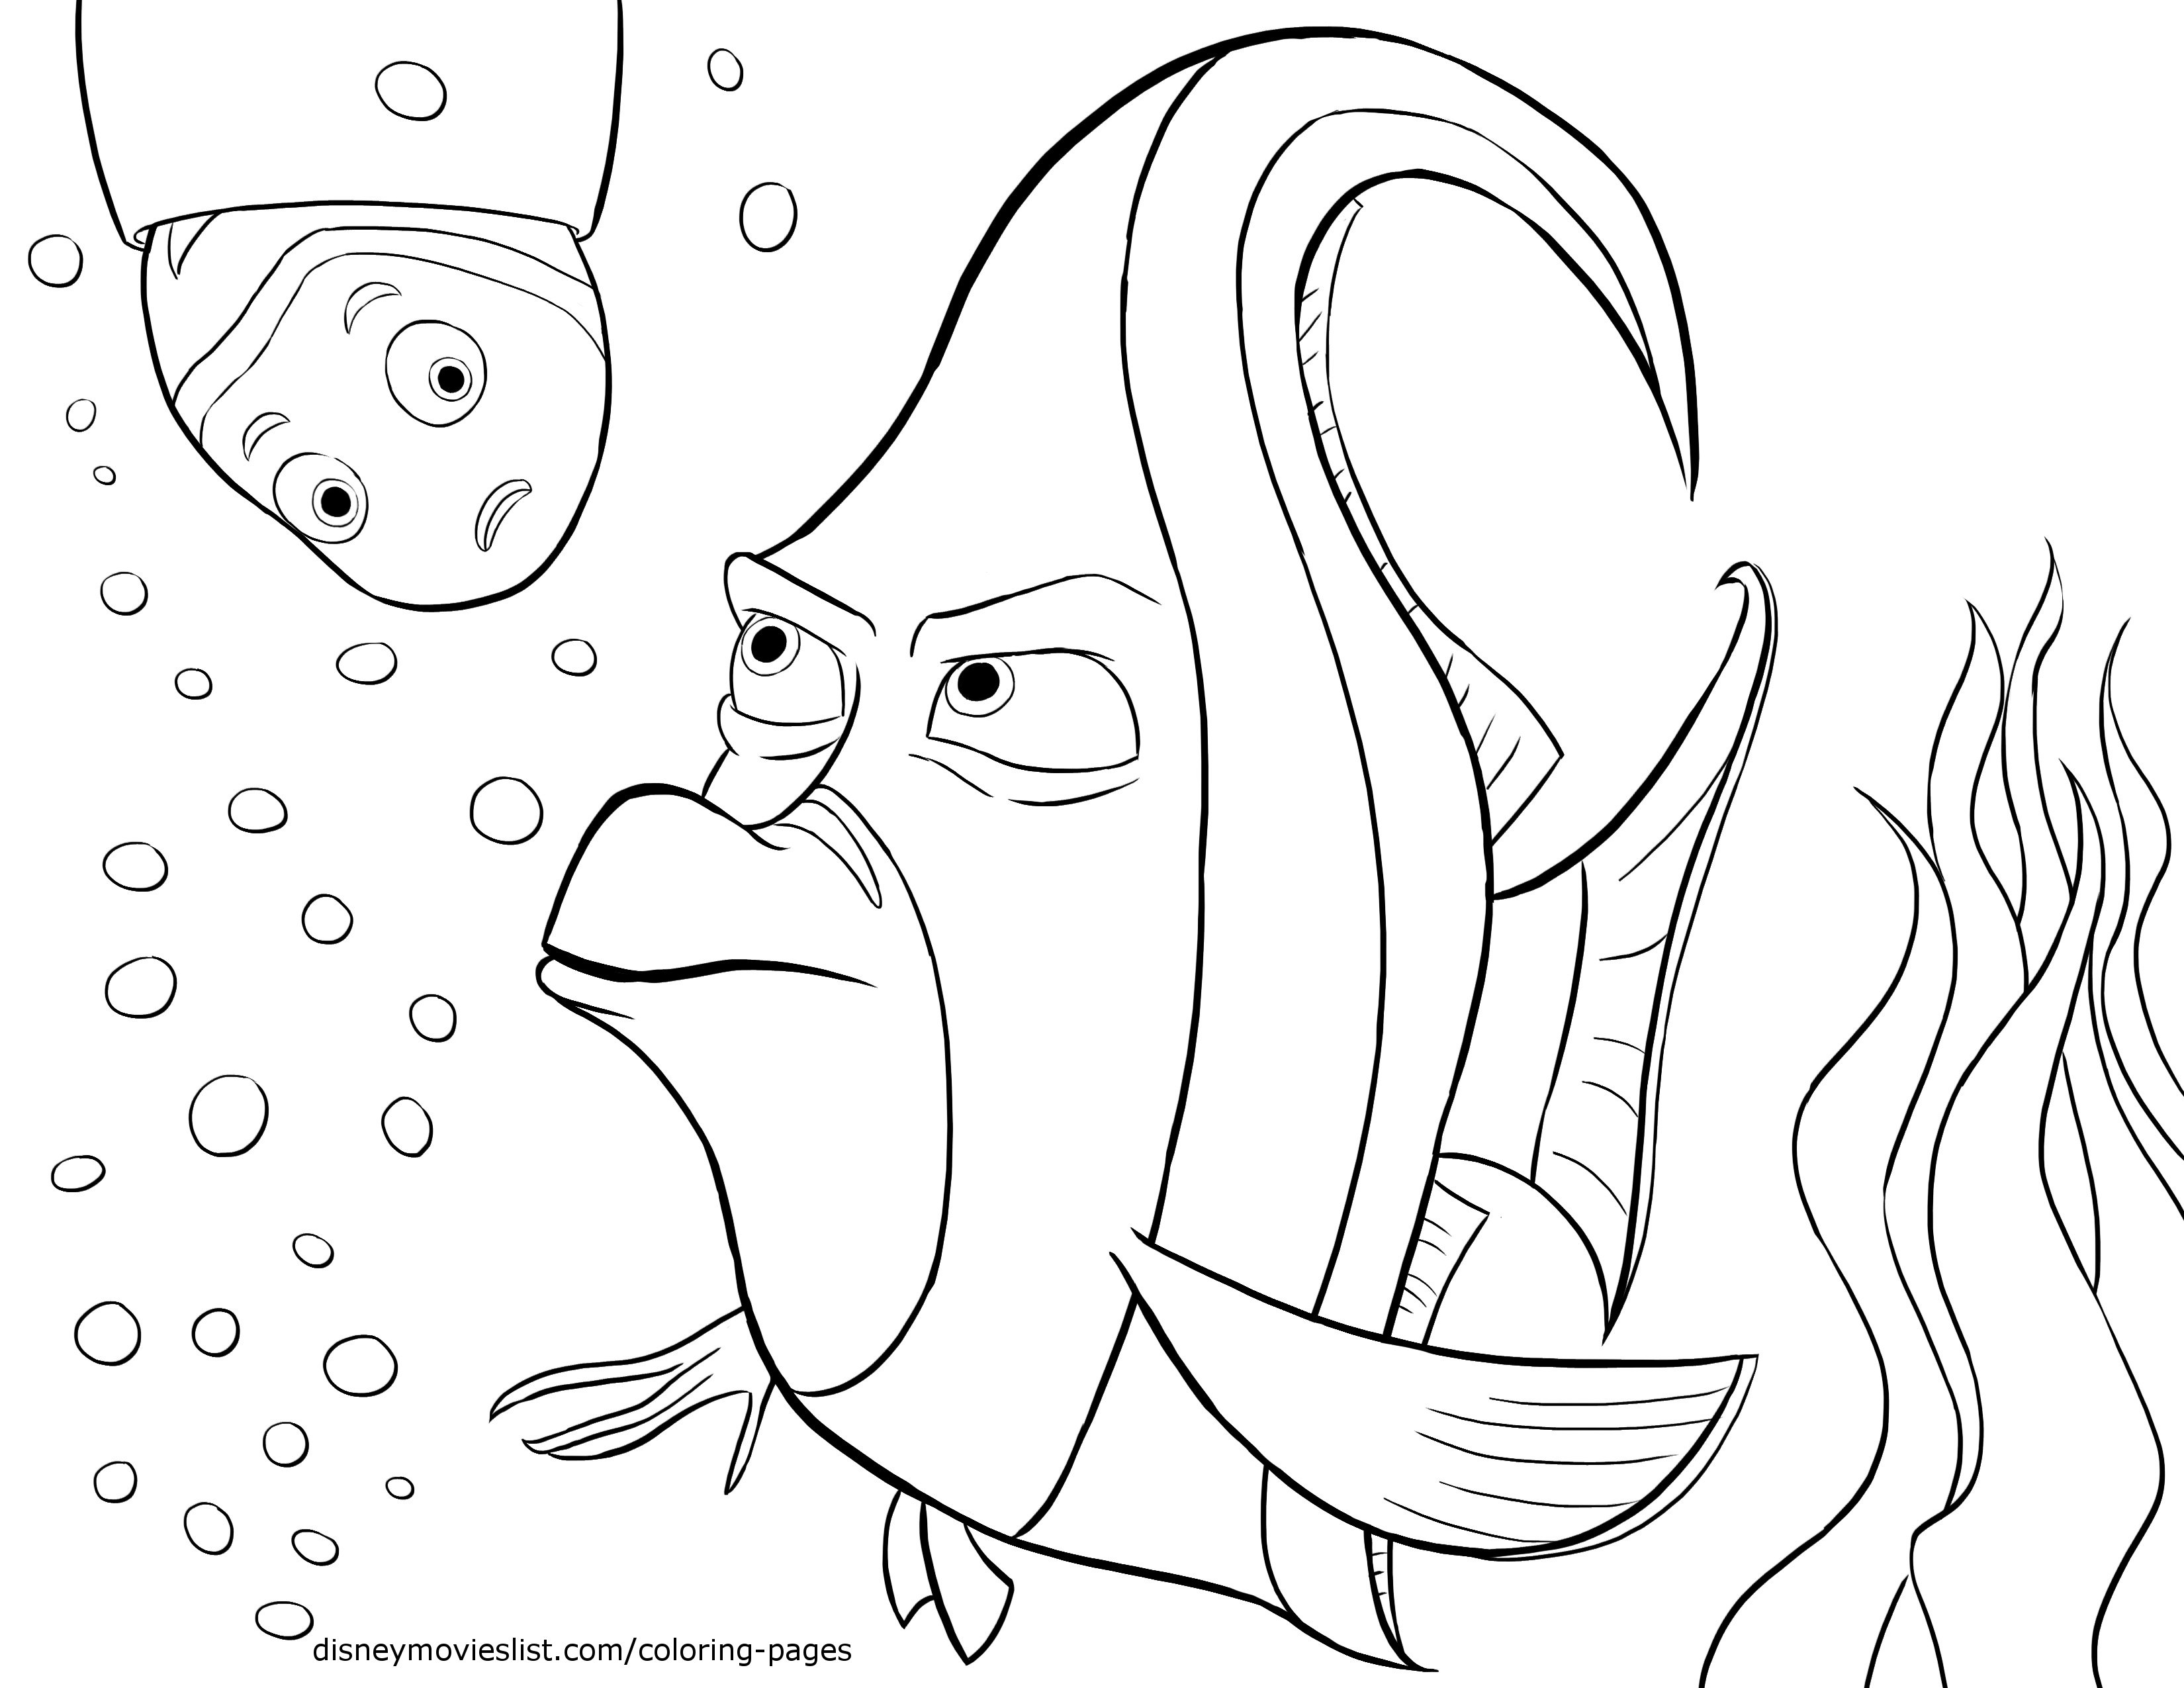 3300x2550 Finding Nemo Coloring Pages Finding Nemo Coloring Pages Pdf Kids